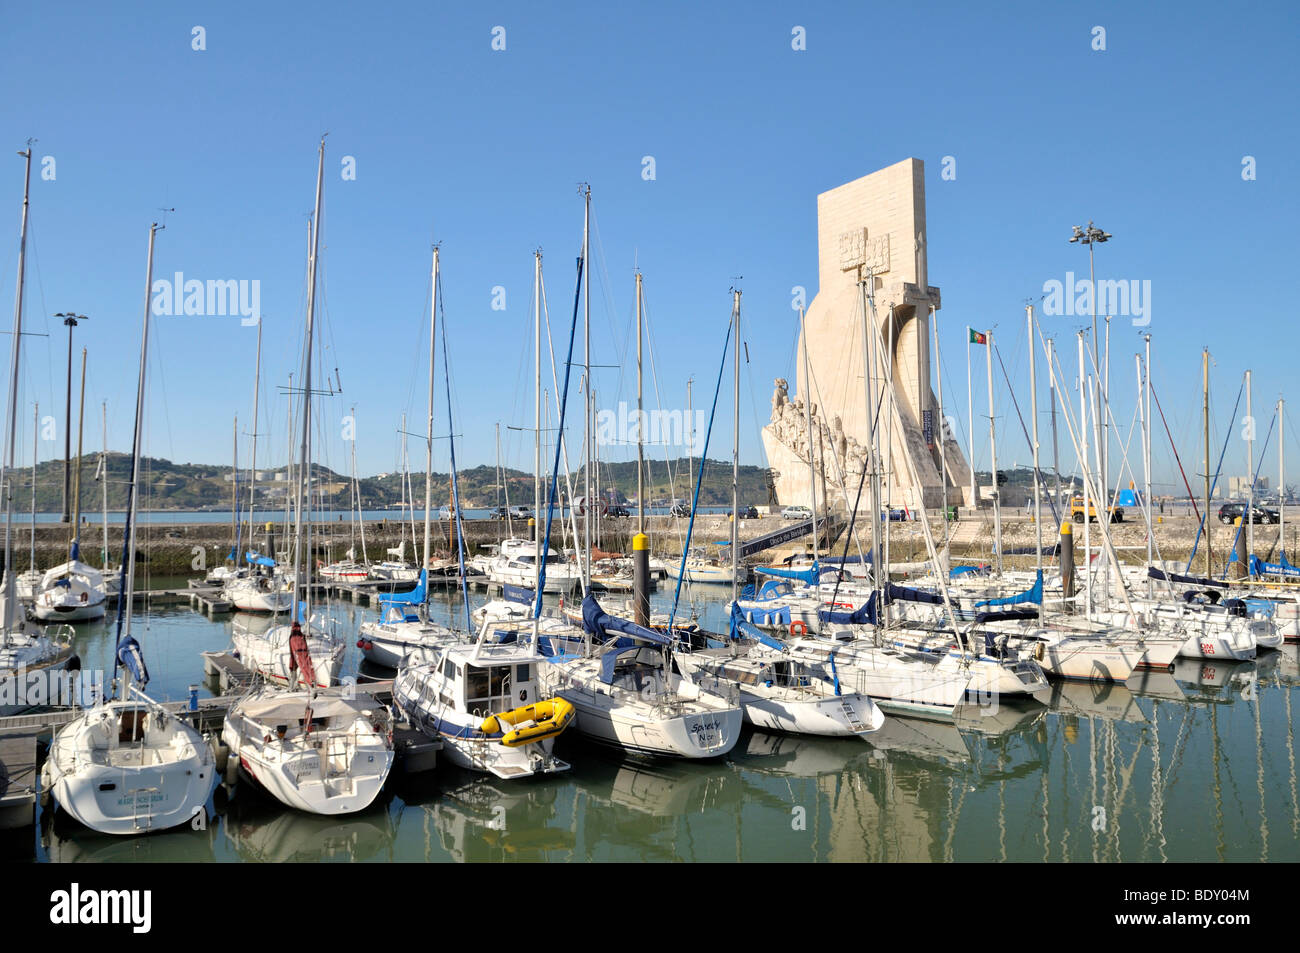 Marina and Monument to the Discoveries, Padrao dos Descobrimentos, with great people of the Portuguese seafaring - Stock Image